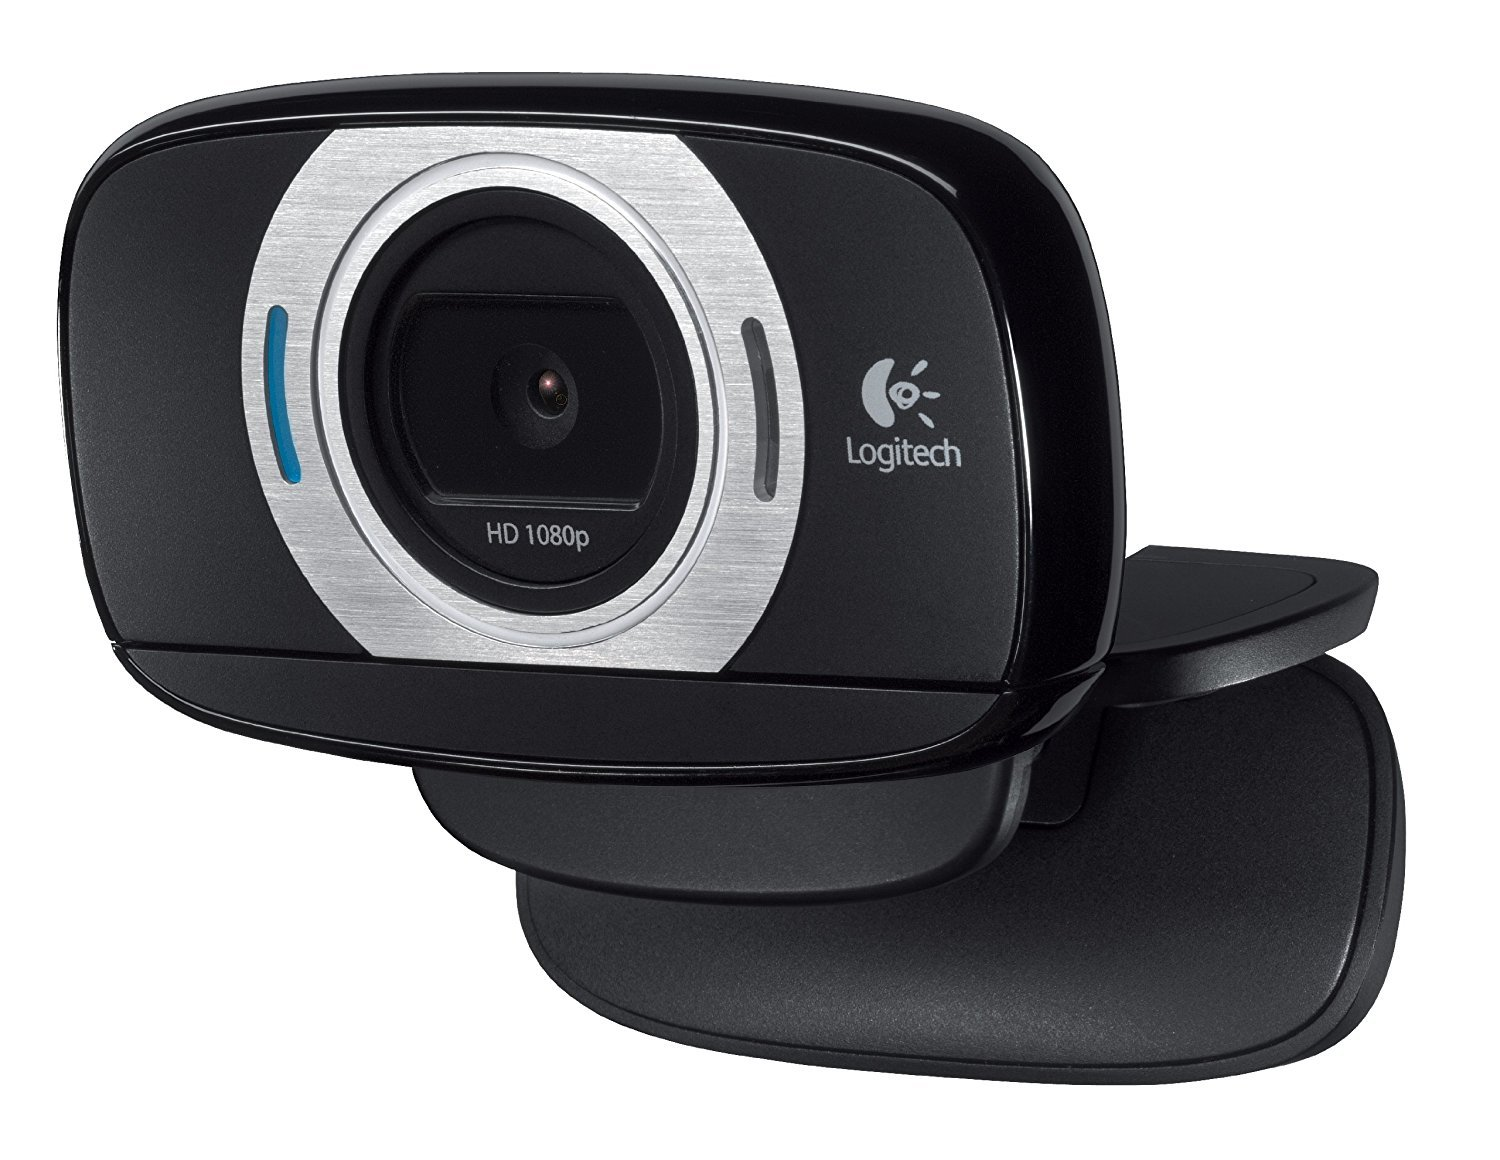 oa3 tableimage 10 Best Webcams and Conference Cameras